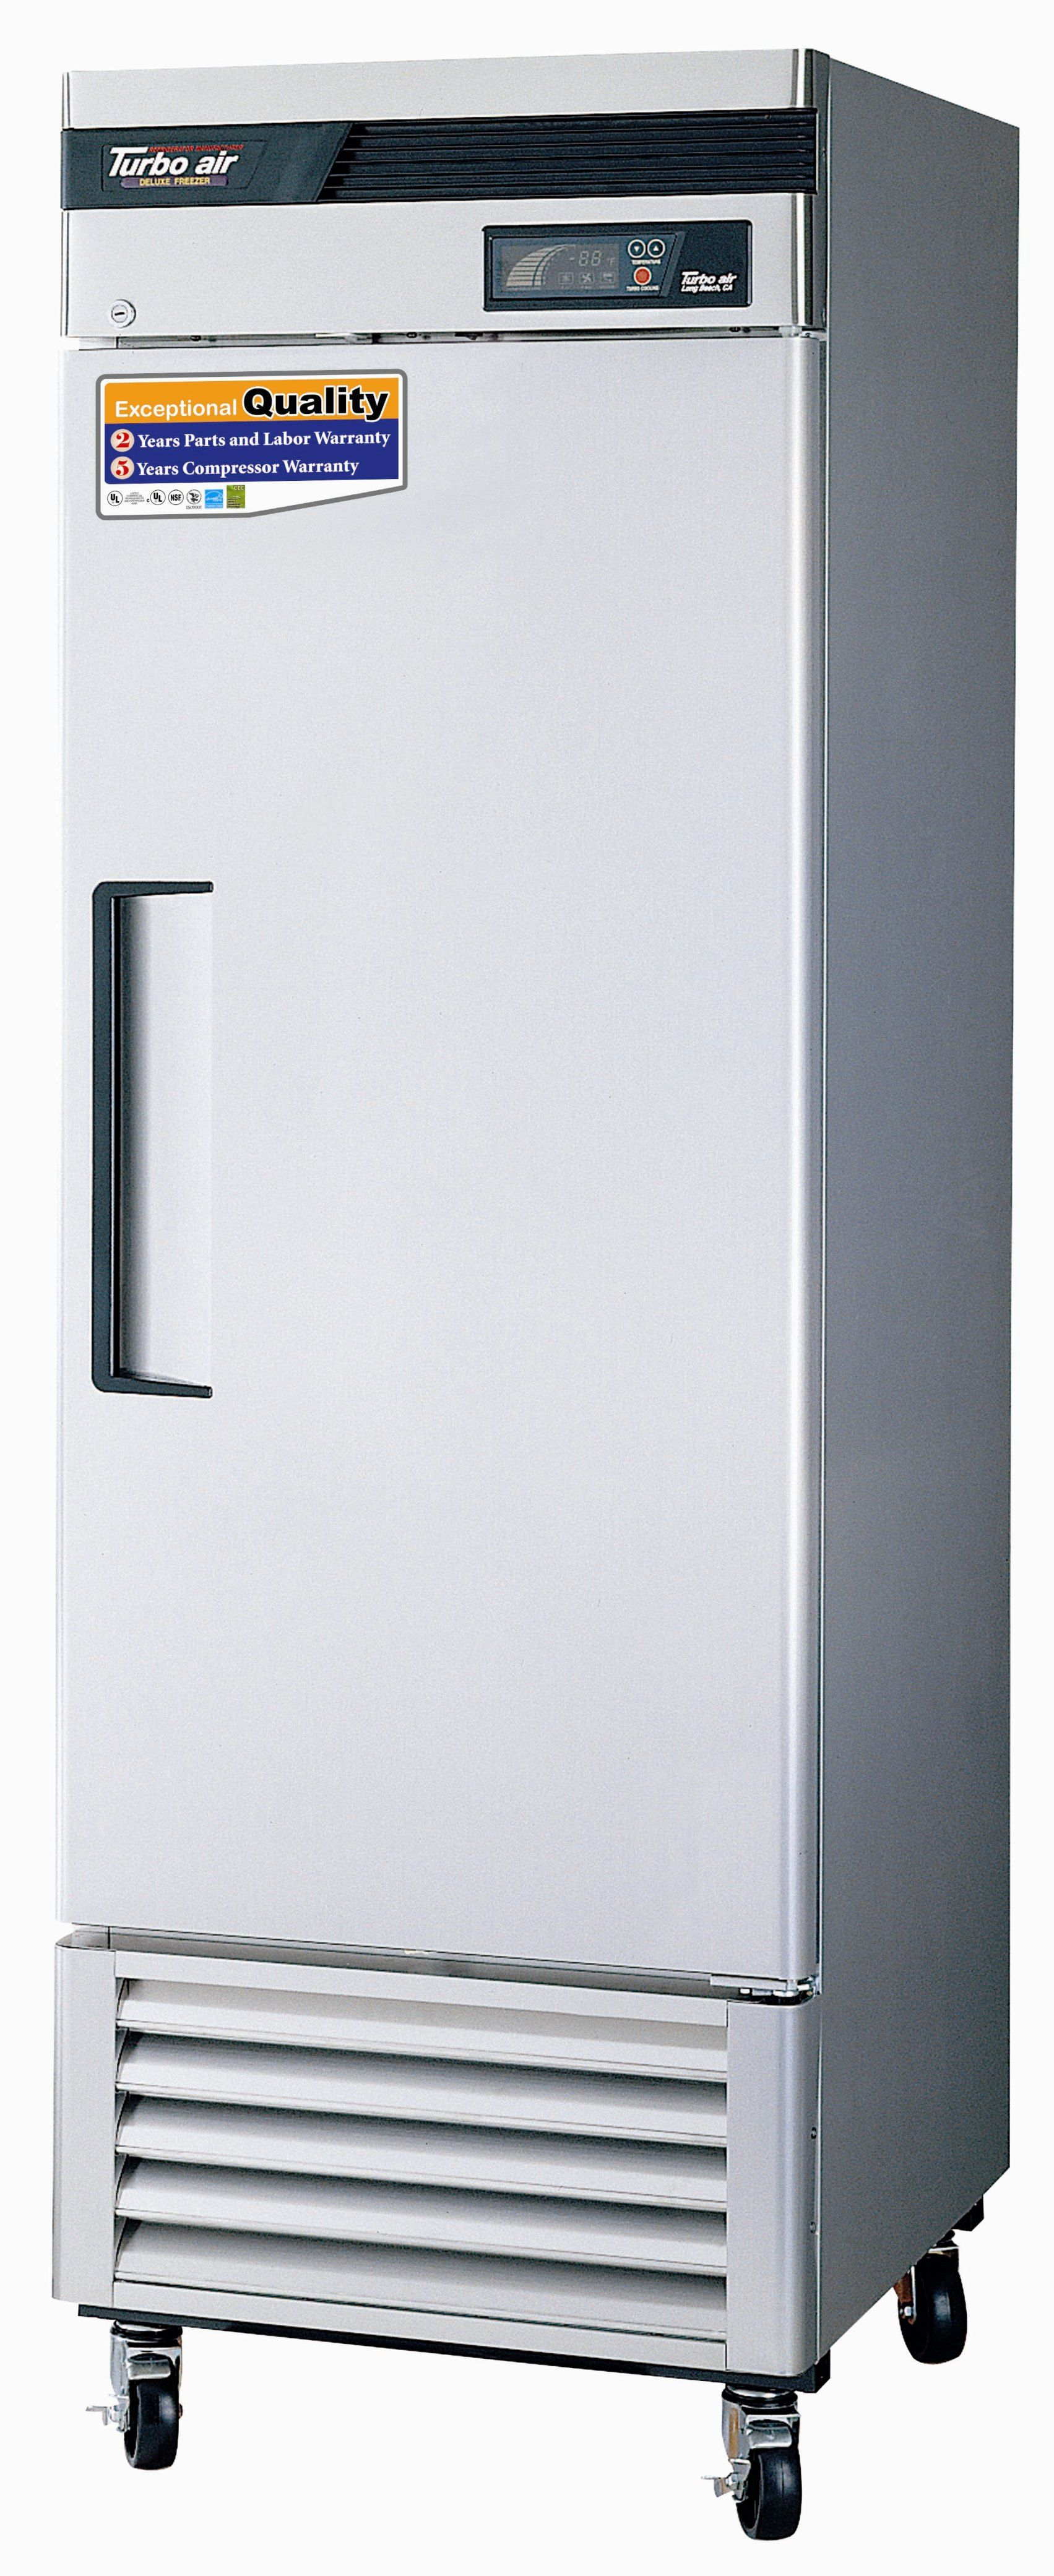 23 Cu. Ft ; 1 Door Available for Freezer and Refrigeration